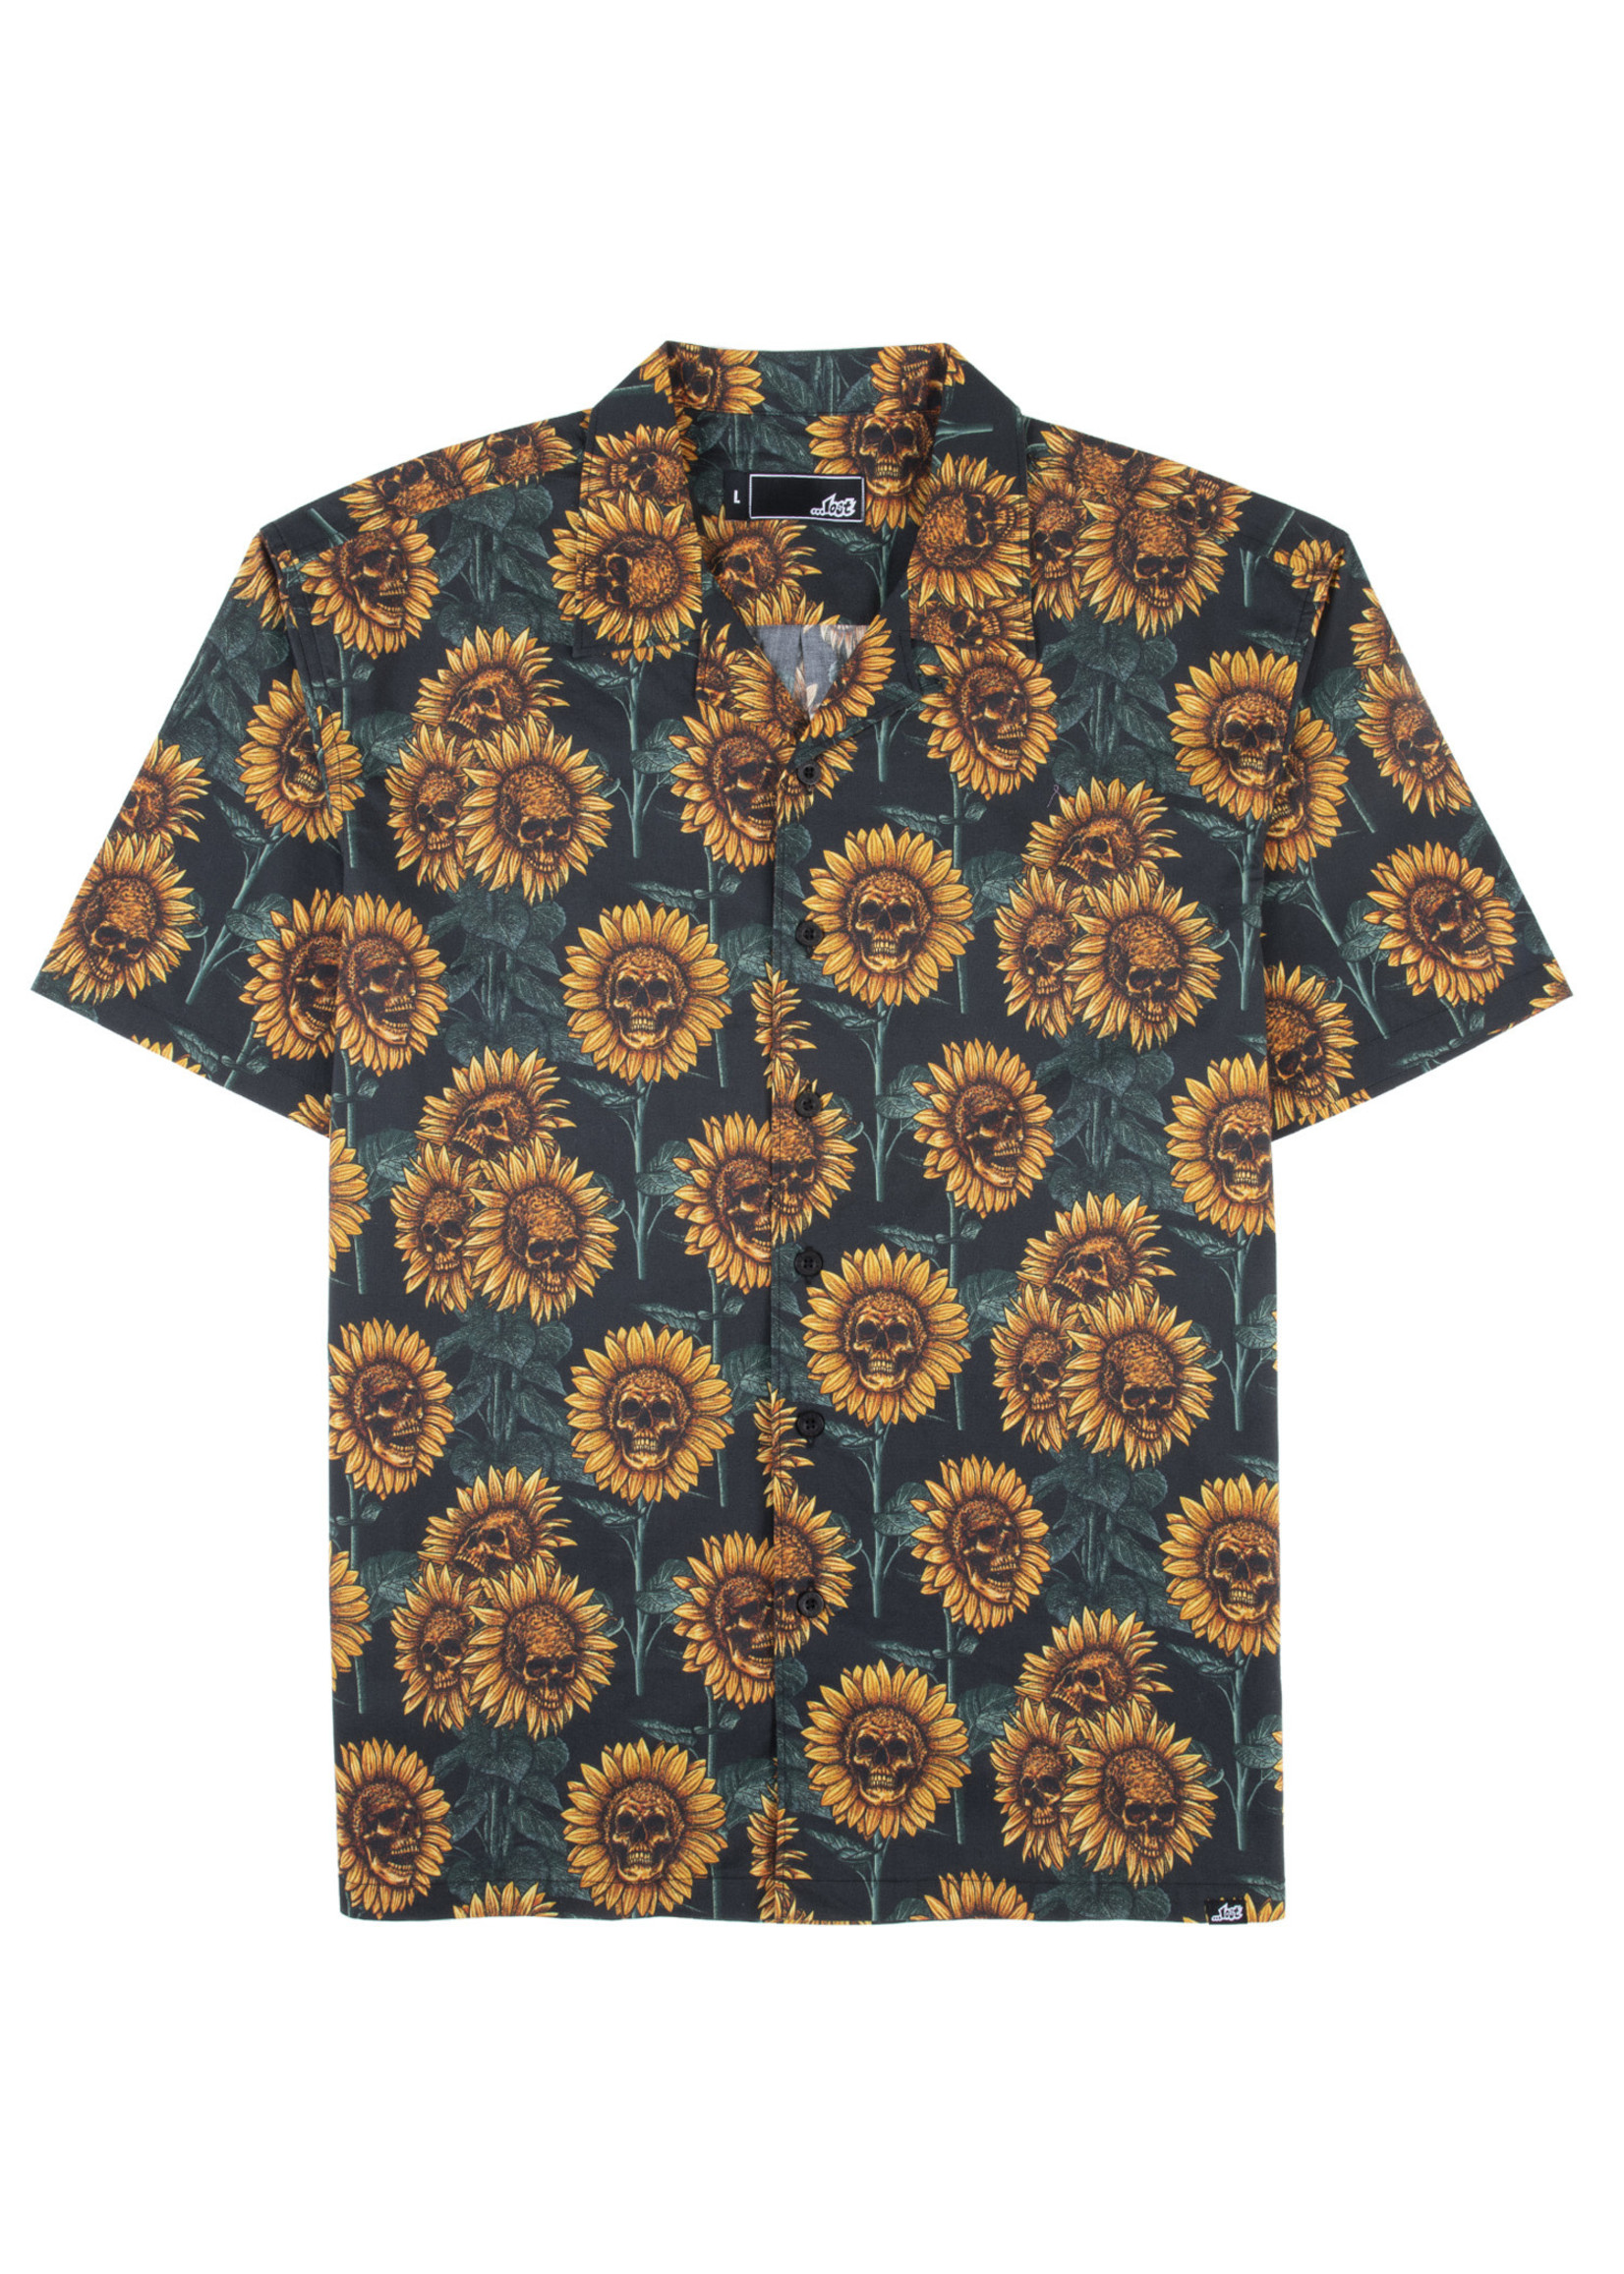 Lost lost Dying Sun Woven Shirt